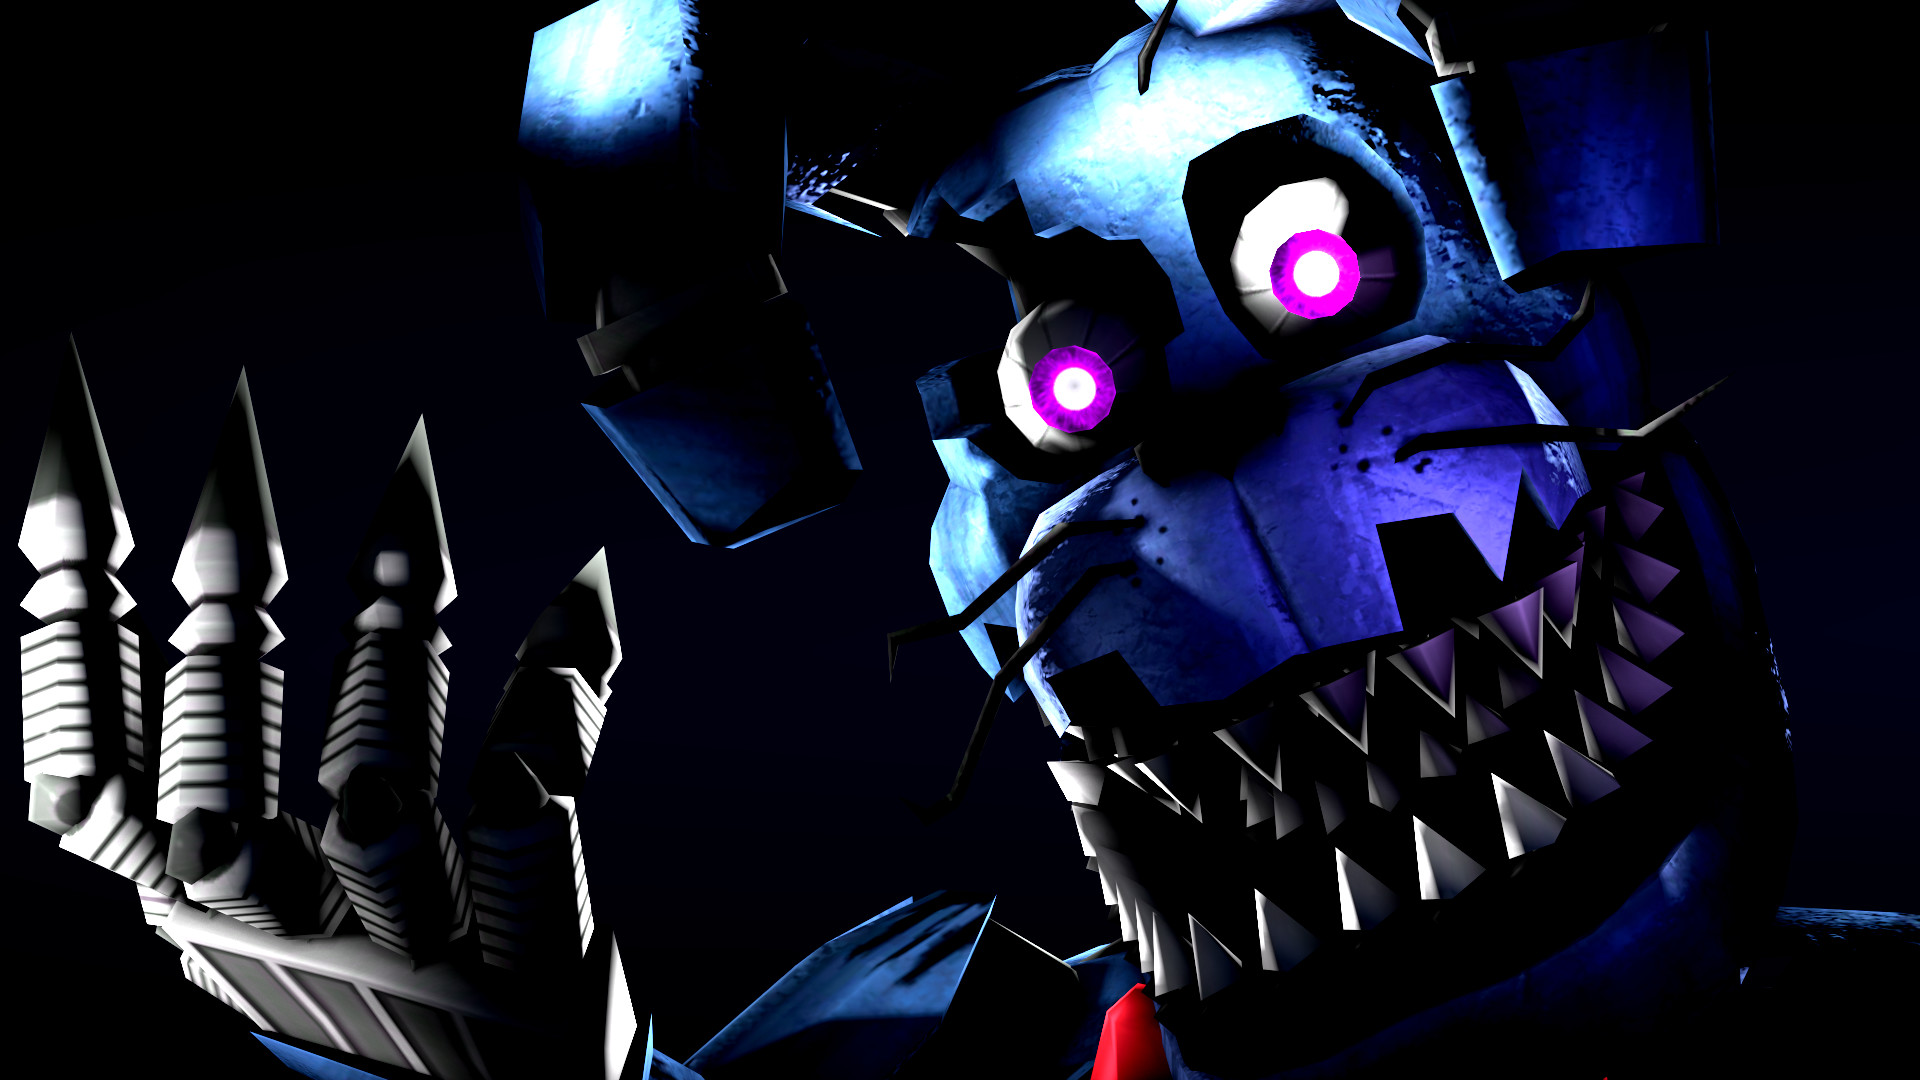 1920x1080 Full HD Wallpapers FNAF Nightmare Bonnie 1395.33 Kb